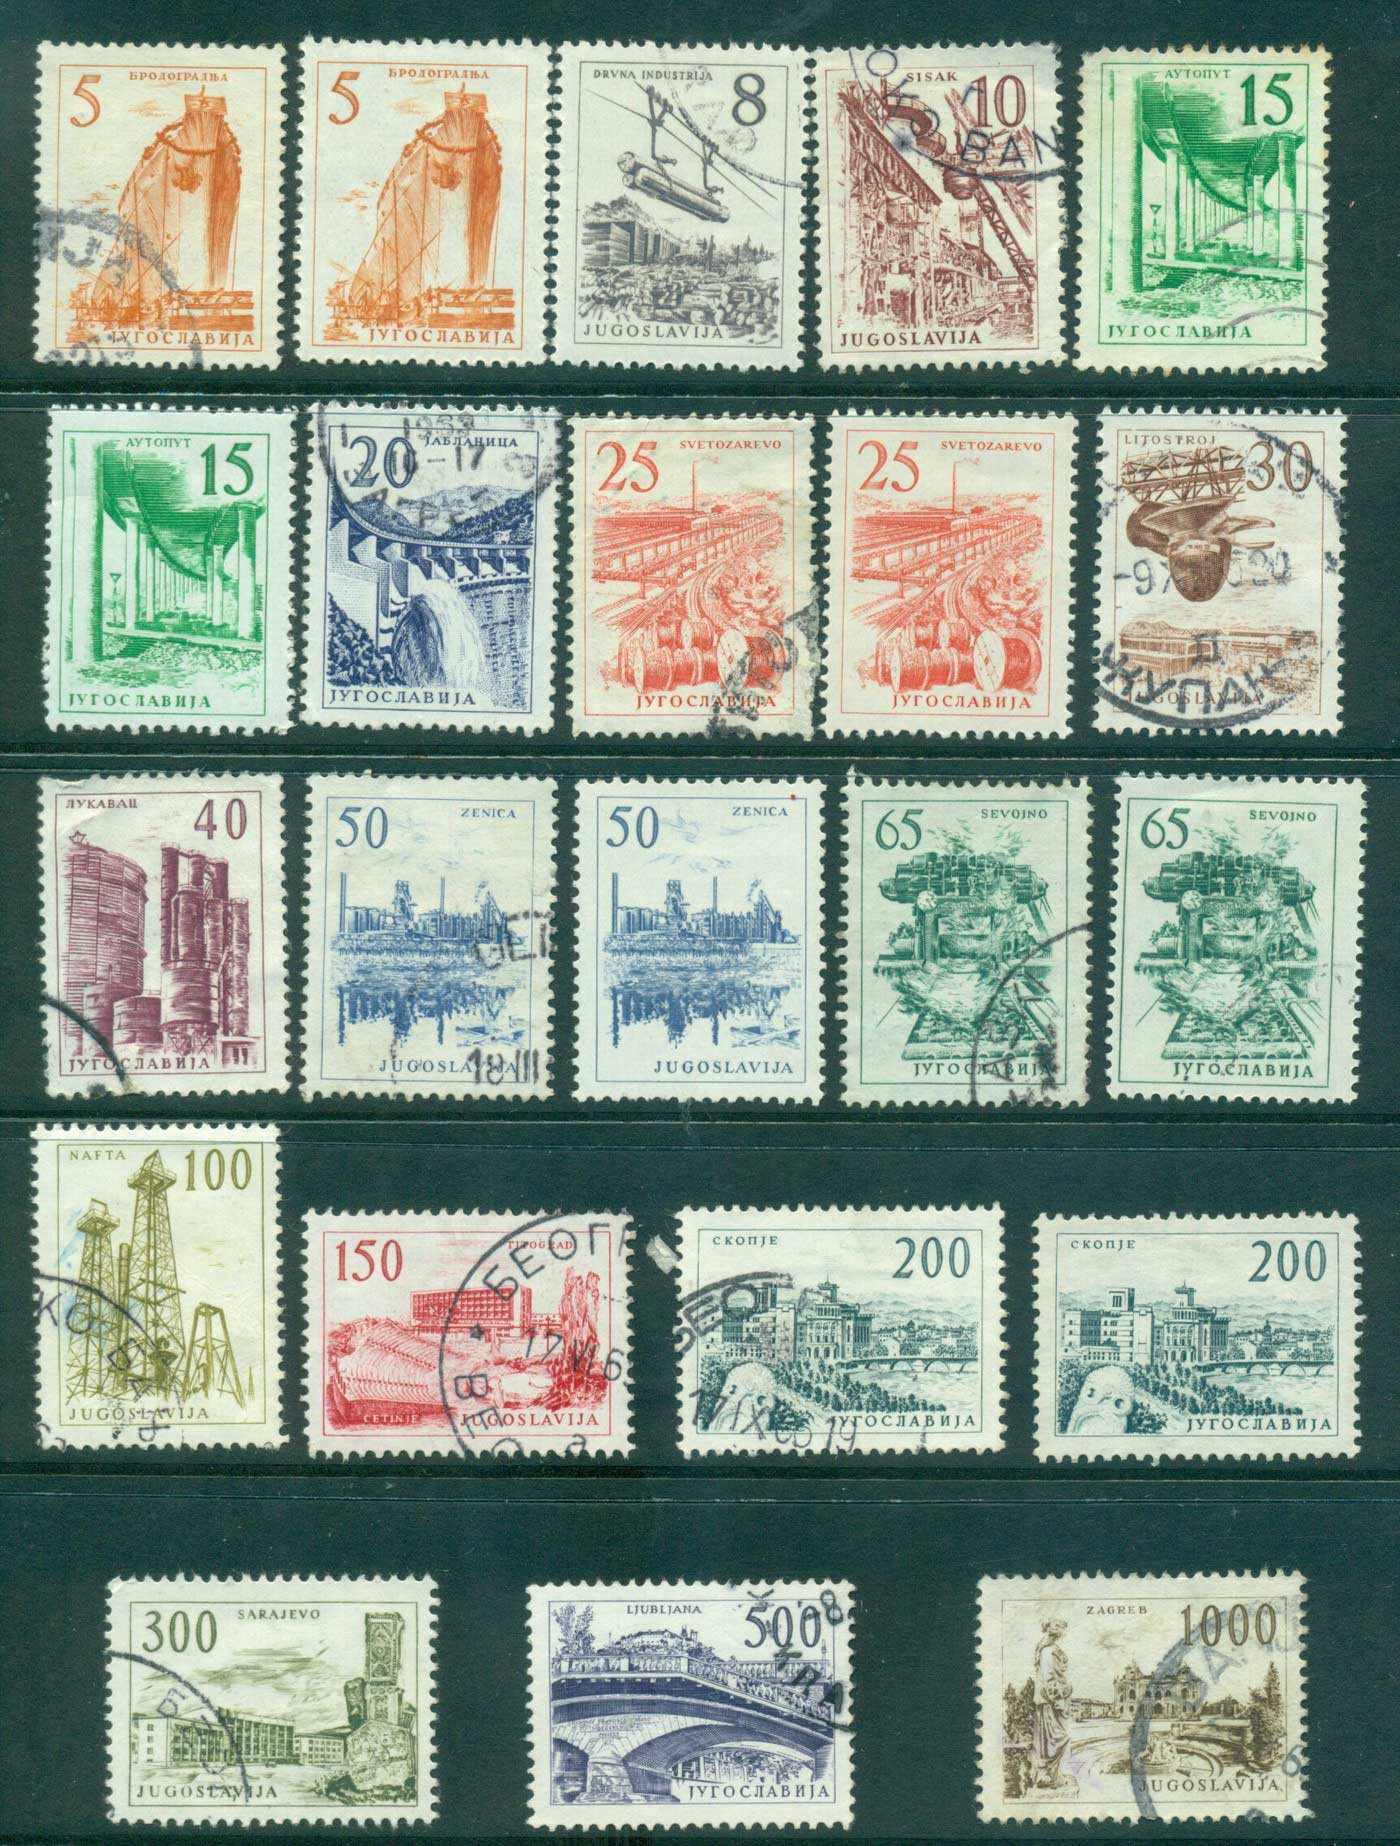 Yugoslavia 1961-62 Industrial Processes Asst FU lot40500